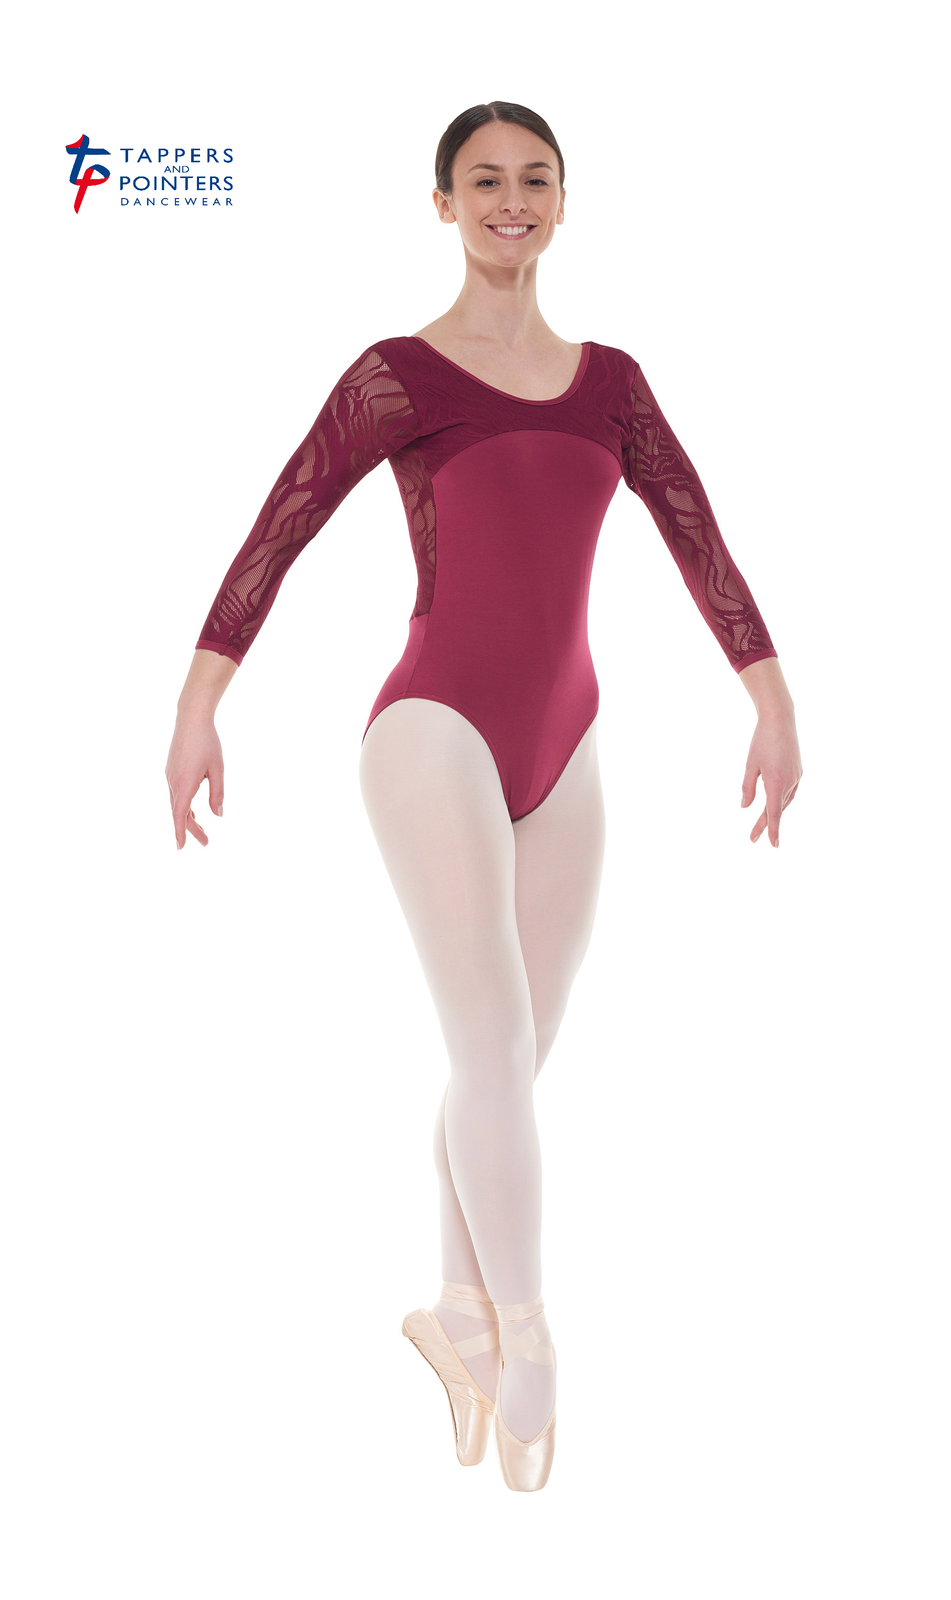 Tappers and Pointers Damen Ballett Tanz Trikot Trikot Trikot 3 4 Arm Spitze ELE 2 918289